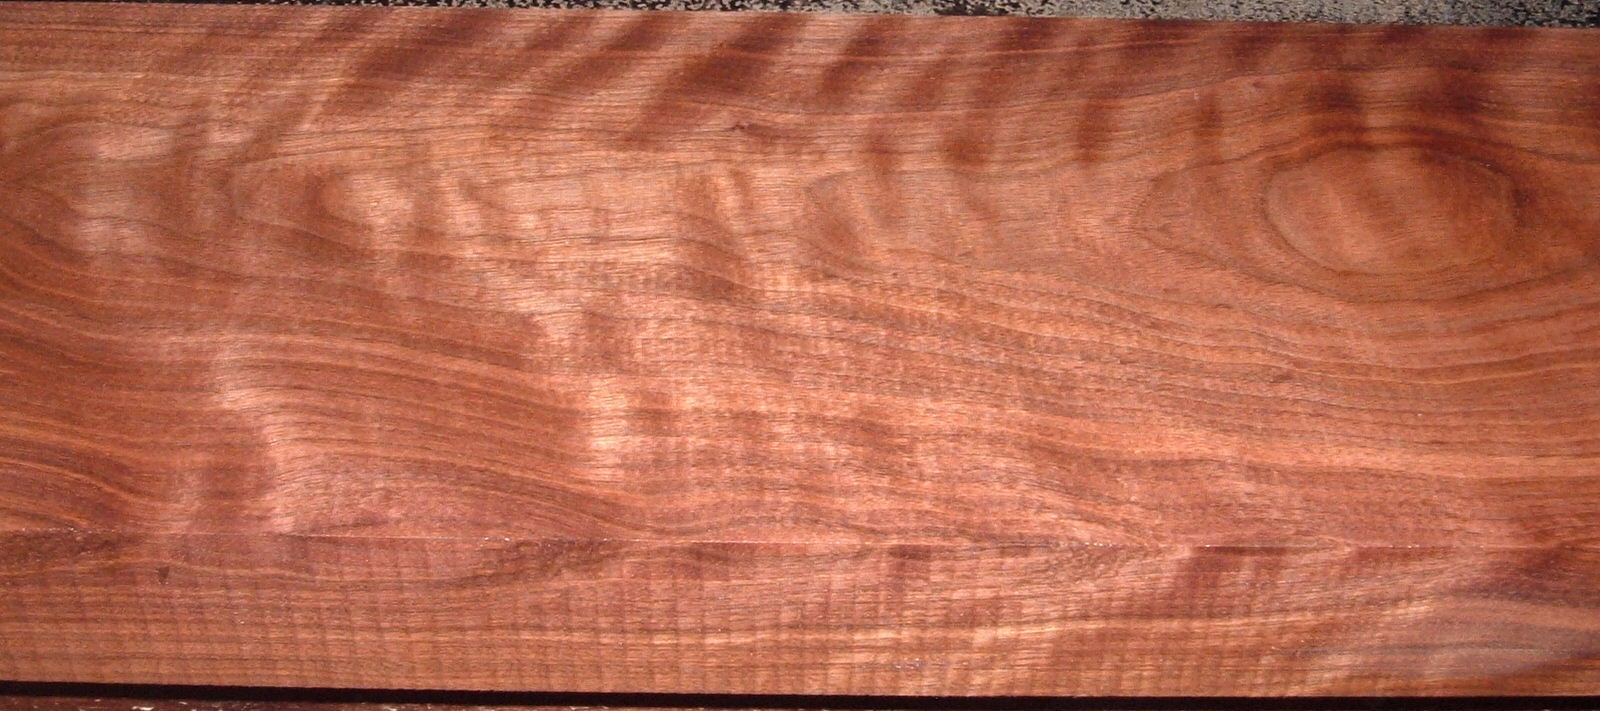 BW2101-28, 2x8x60, Curly Figured Black Walnut, Gun stock Blank